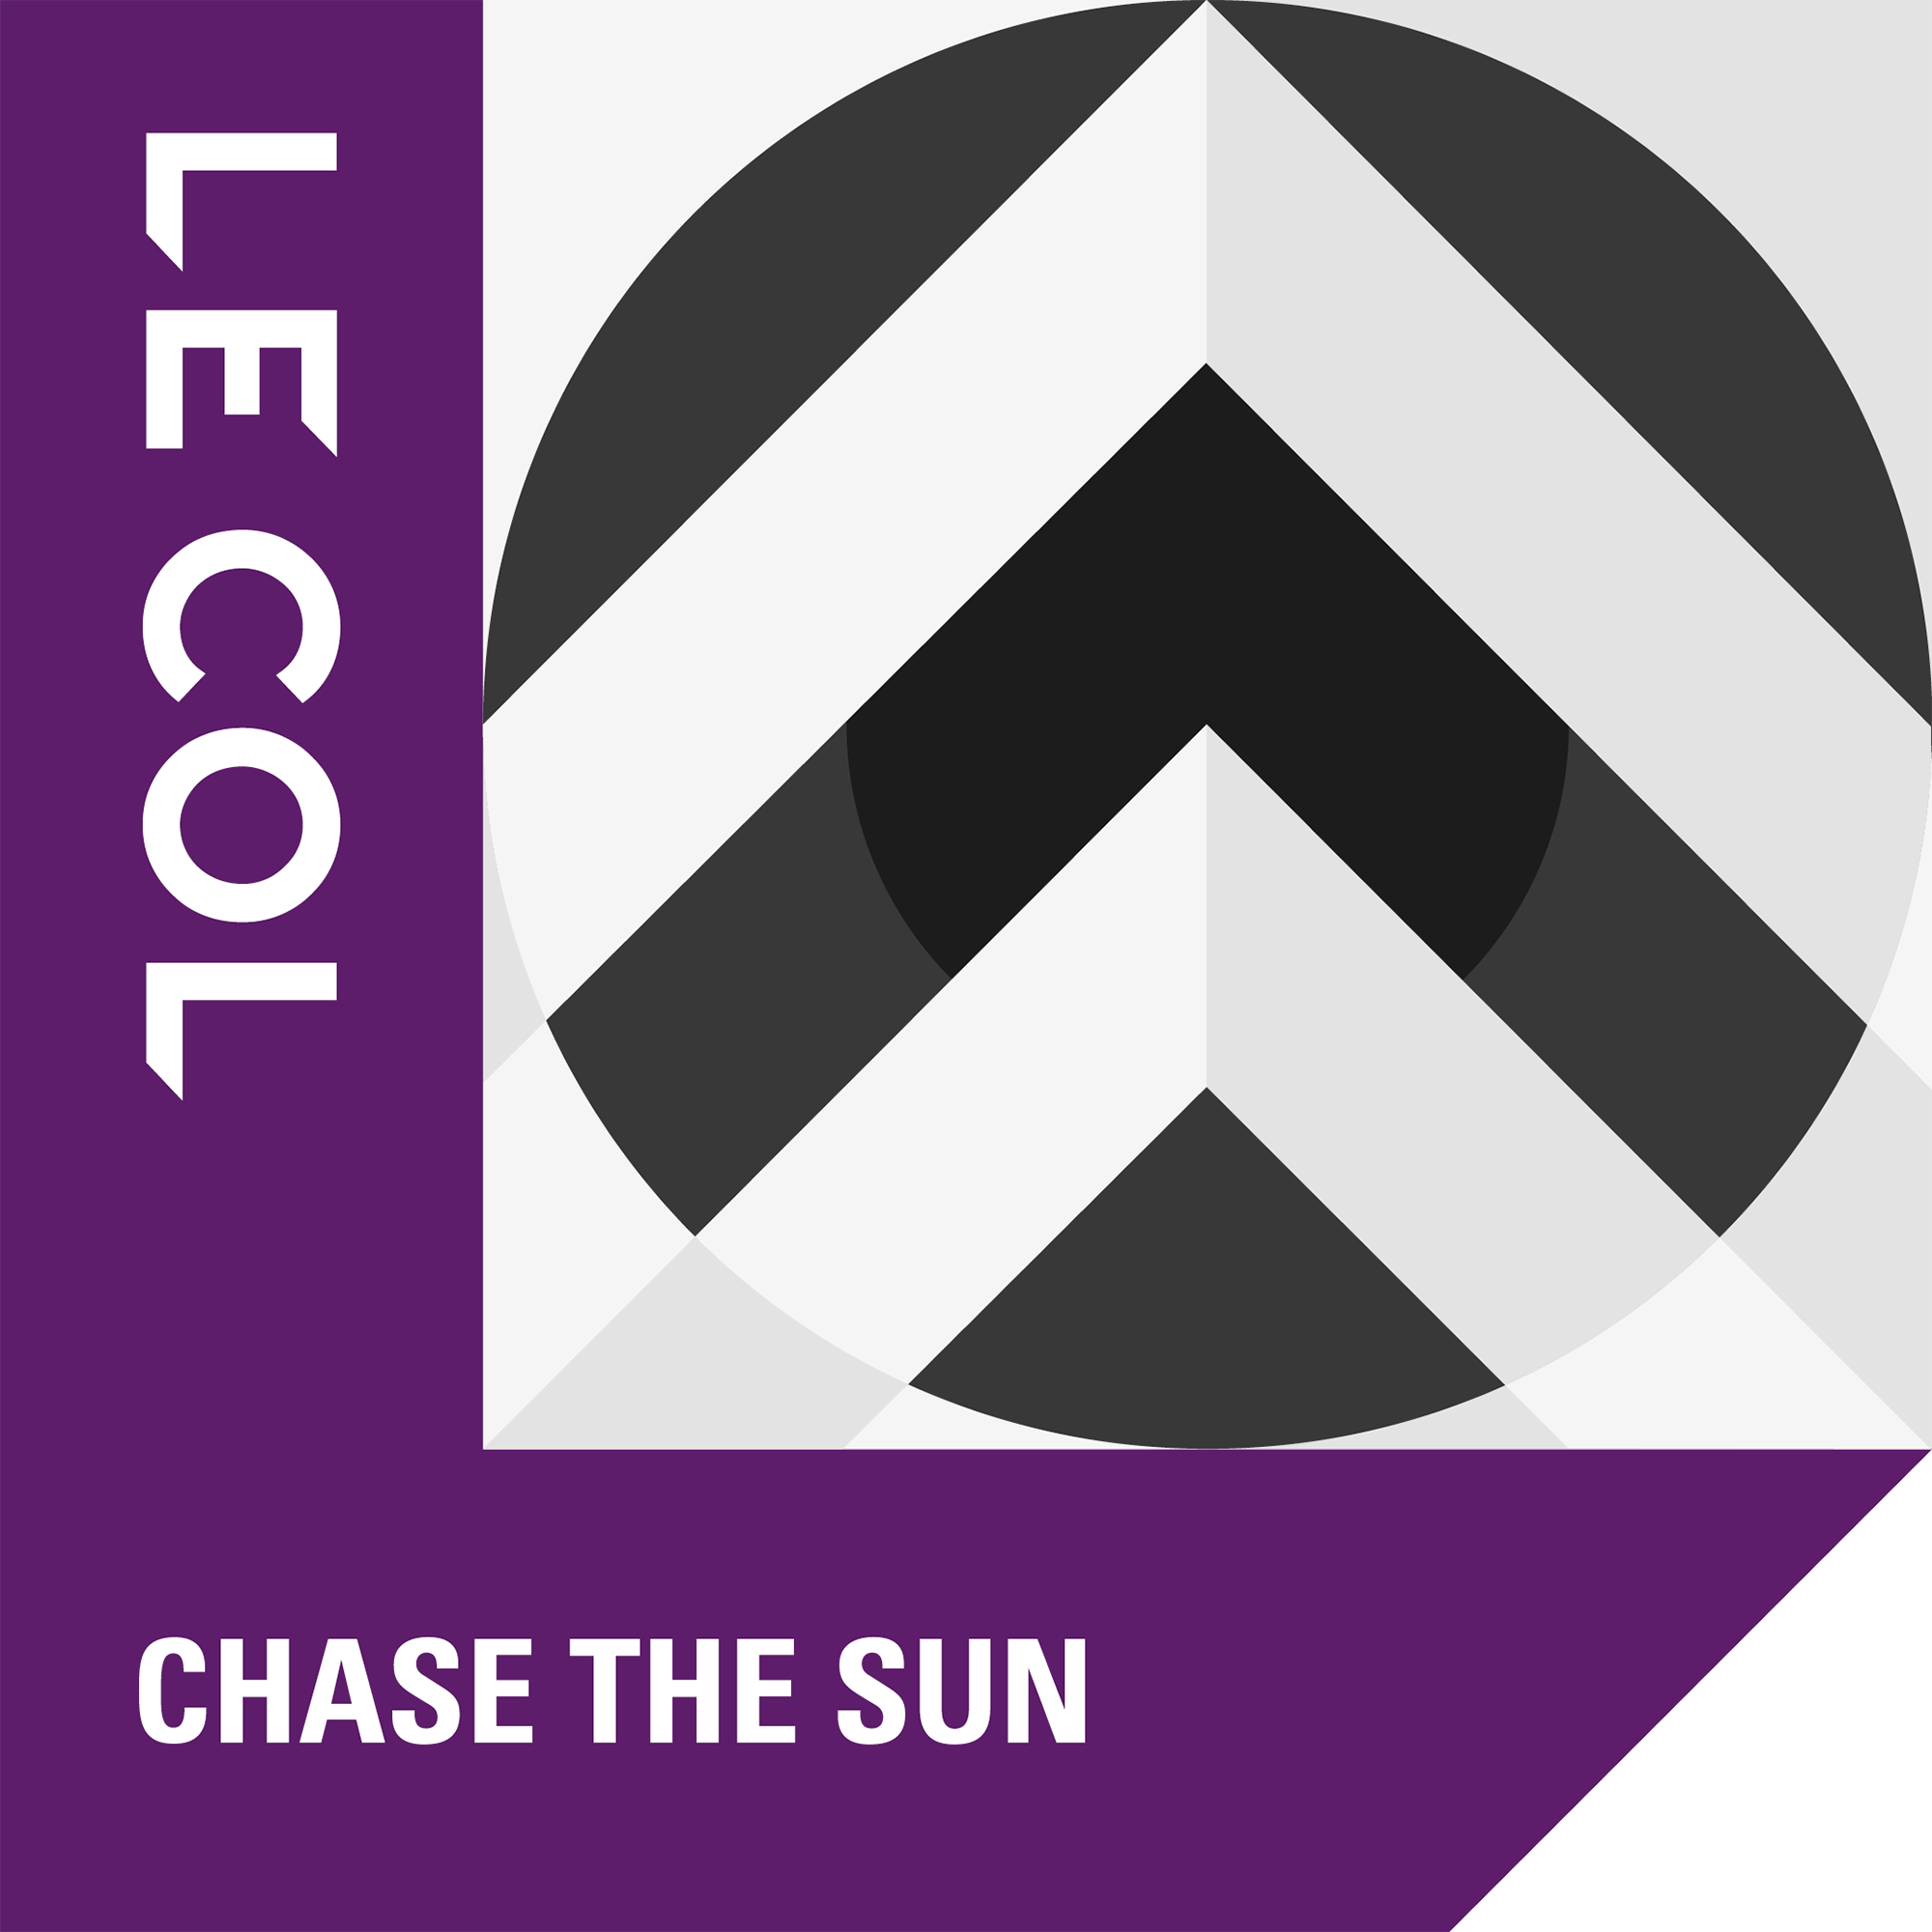 Le Col Chase The Sun